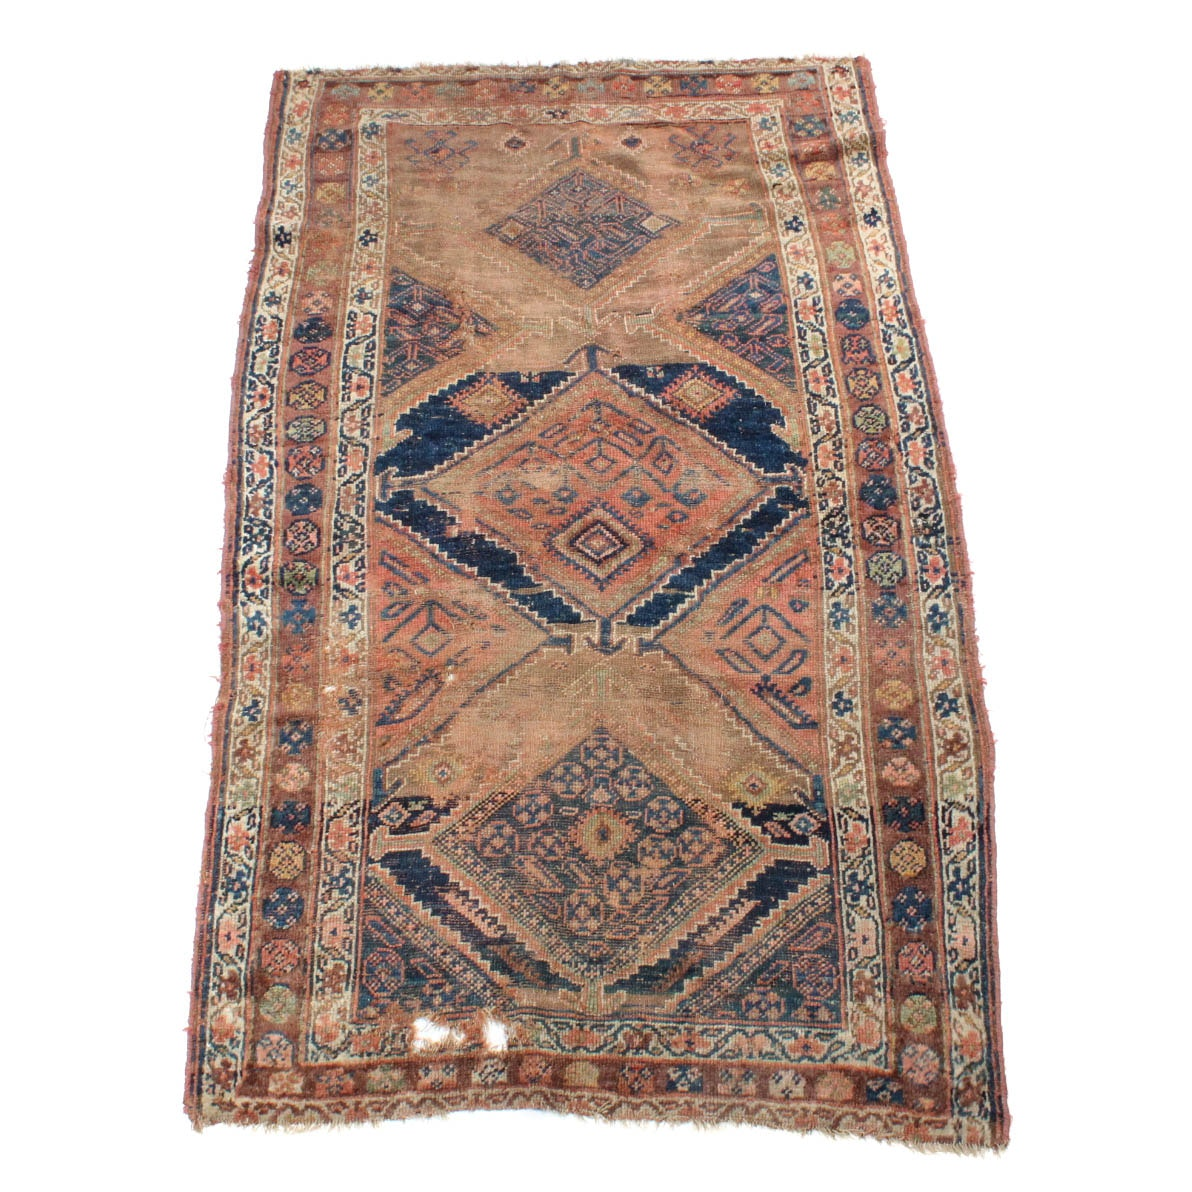 Antique Hand-Knotted Persian Kurdish Caucasian Long Rug